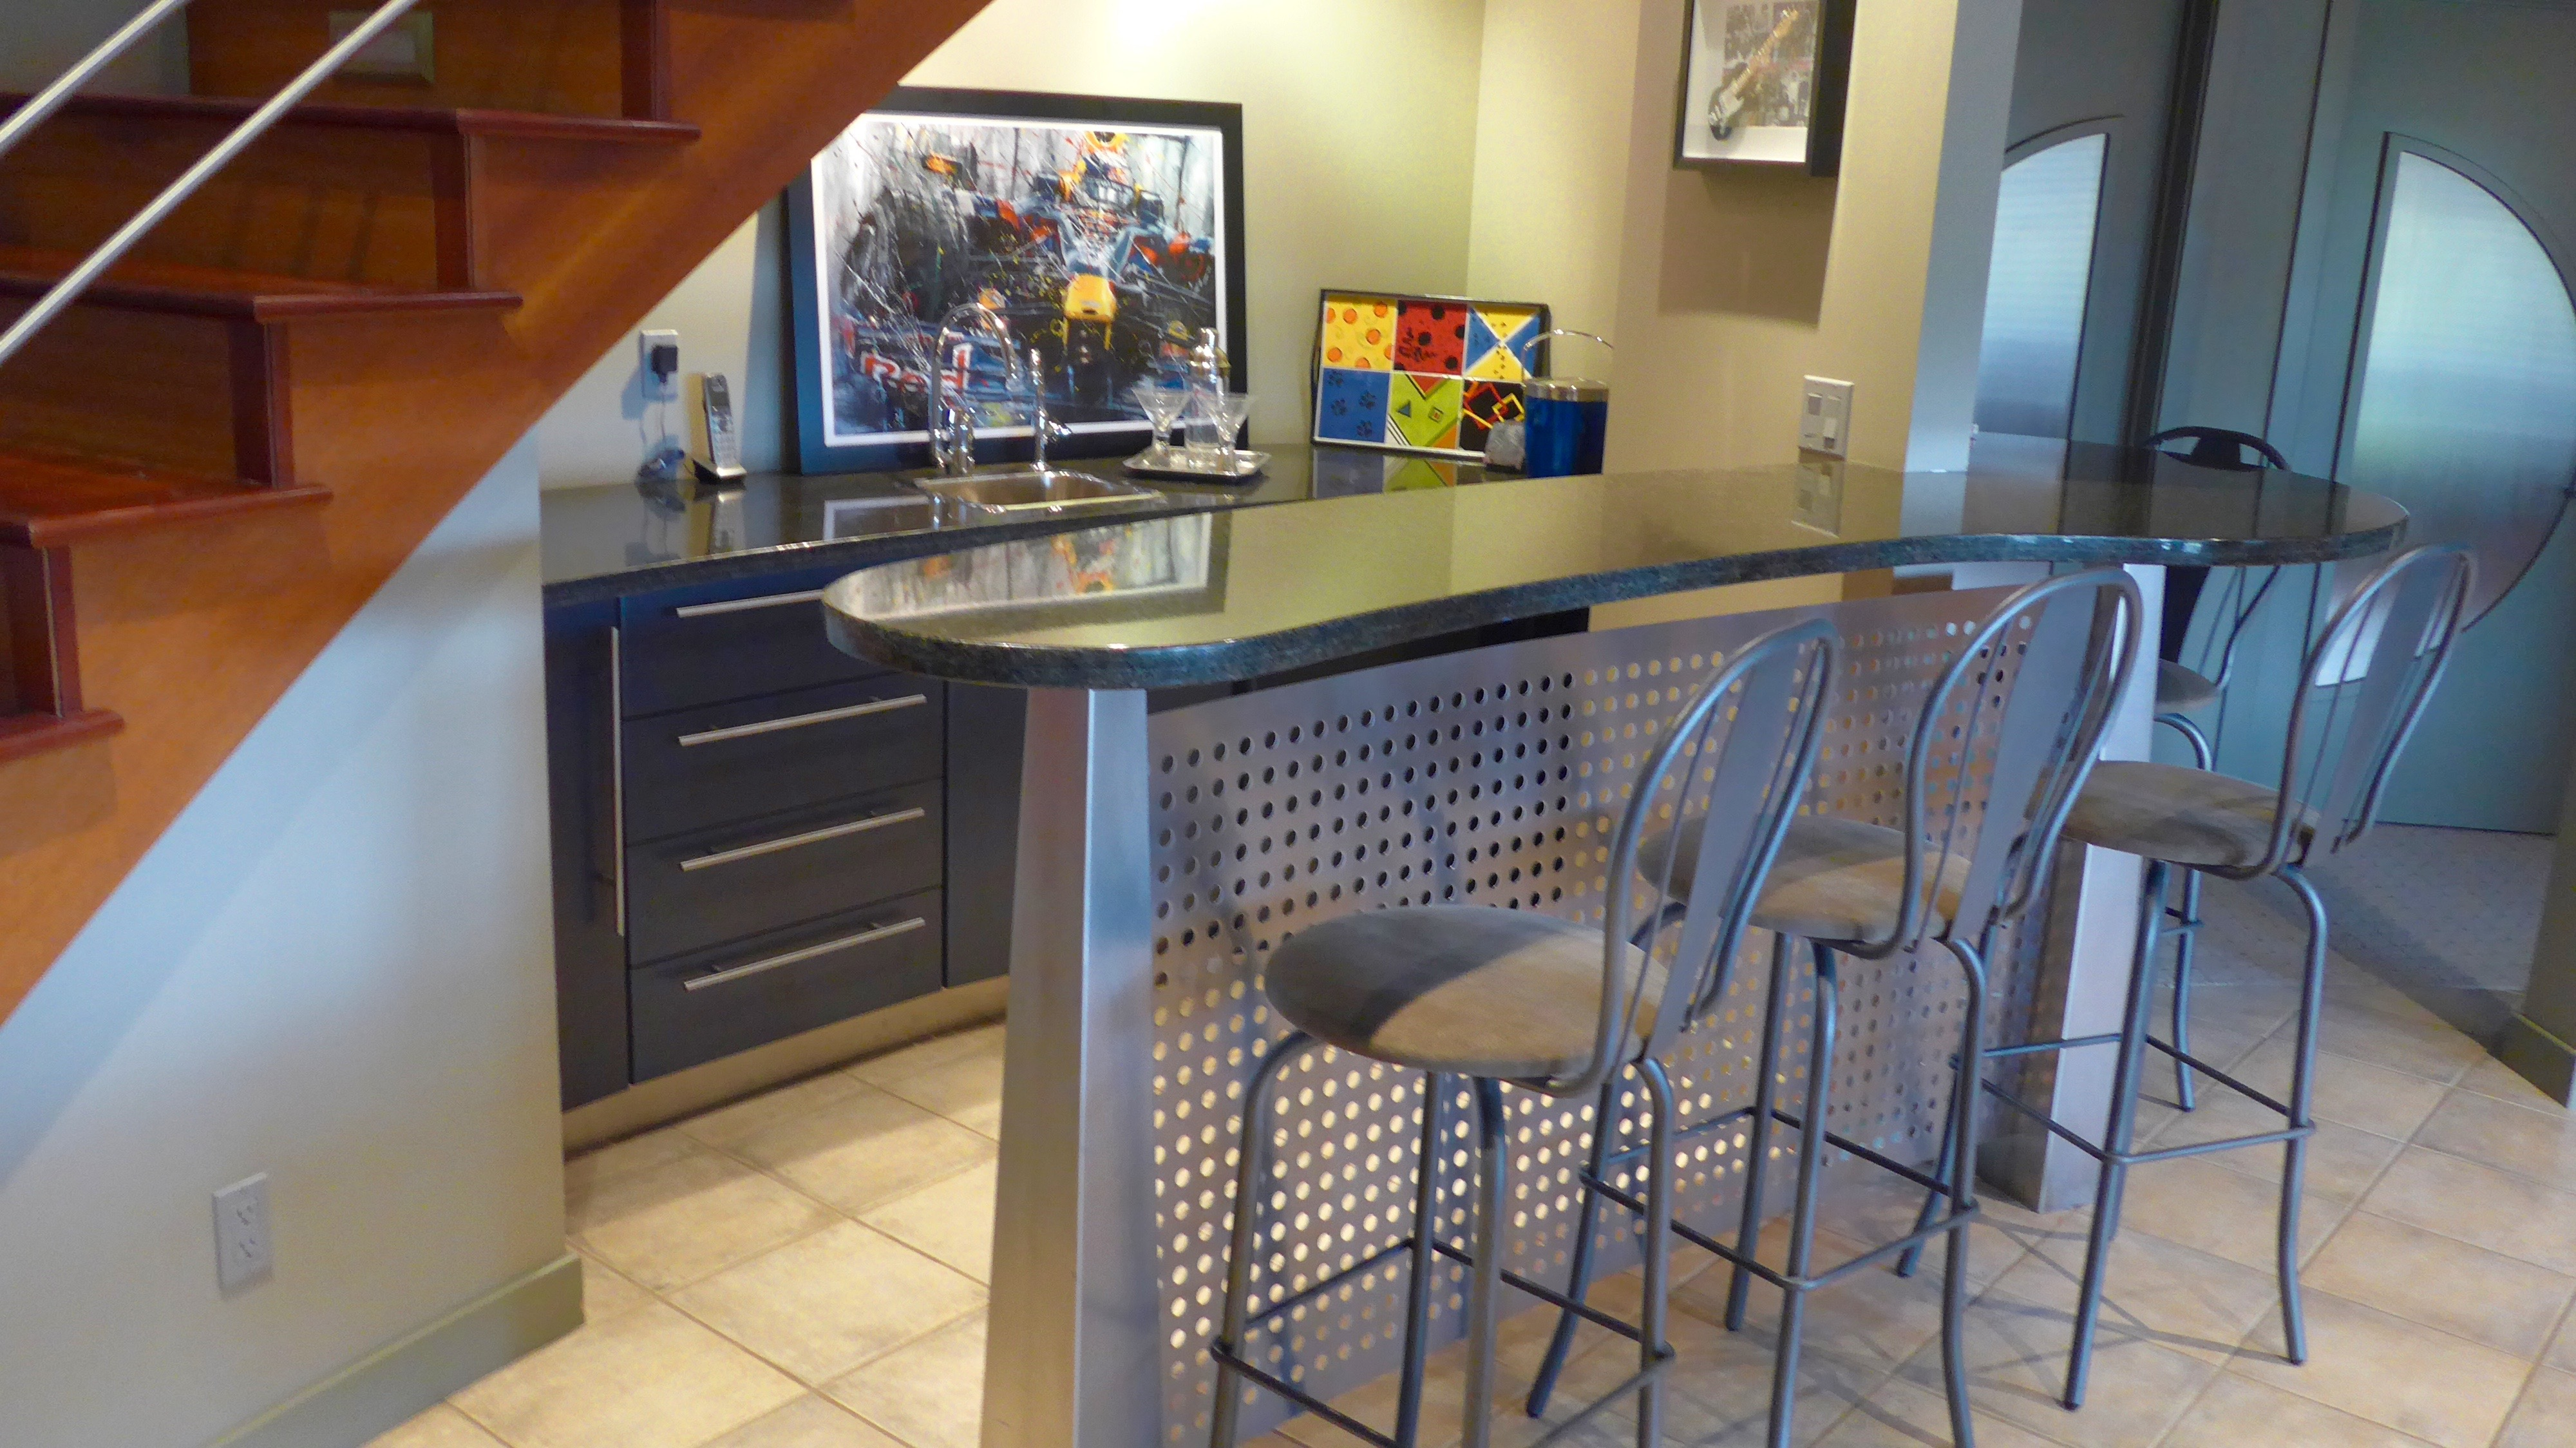 granite kitchen to plate shaker the how blog fox cabinets a steel travertine compromises white home backsplash diy stone countertops